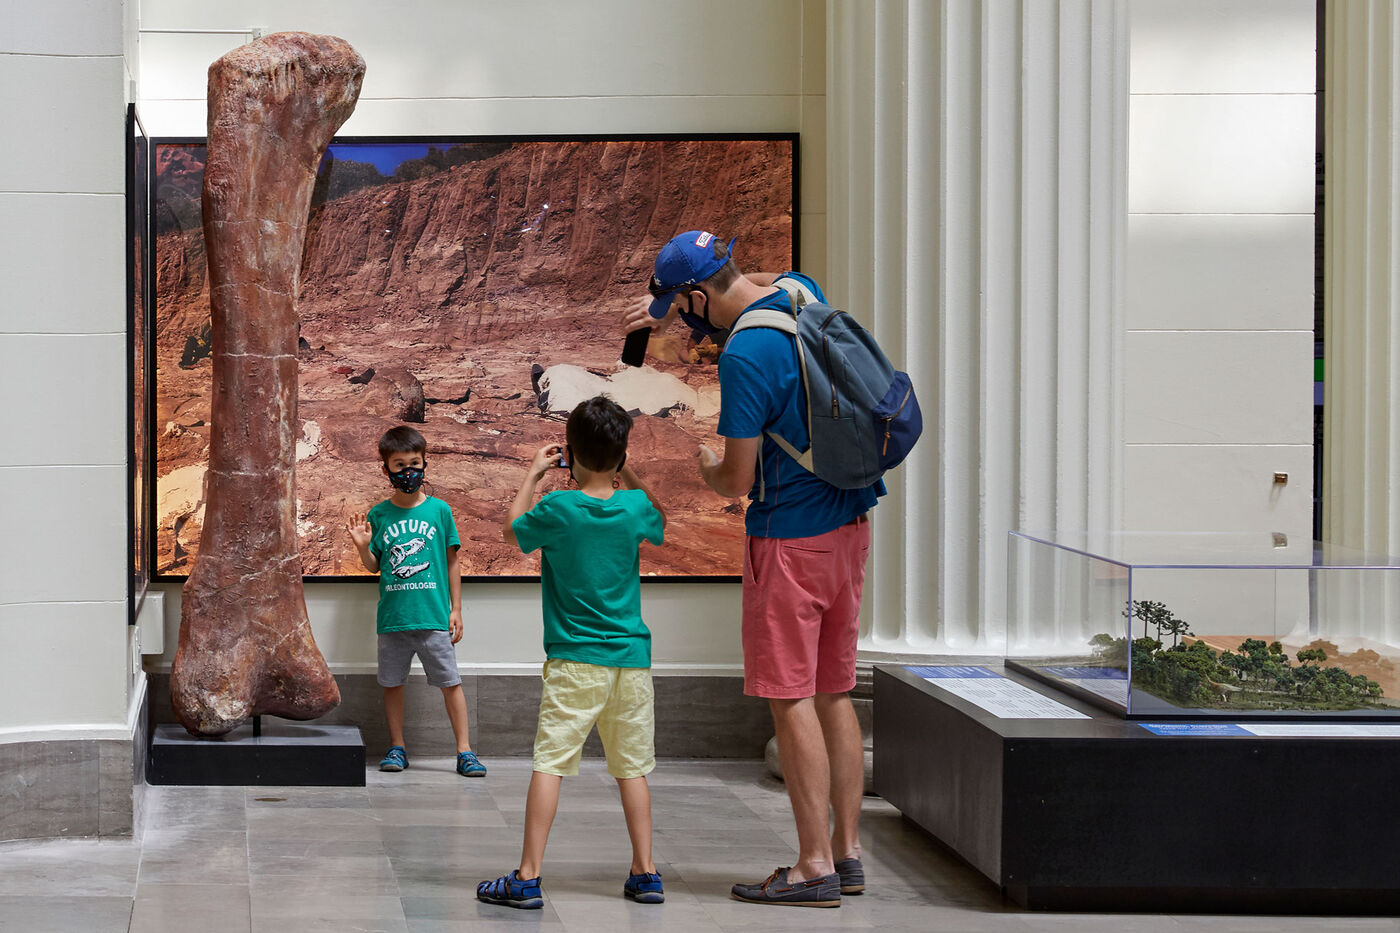 A young boy wearing a face mask poses for a photo next to a dinosaur bone that's twice his height, in front of a mural of a rocky landscape. Another young boy and a man take his photo.